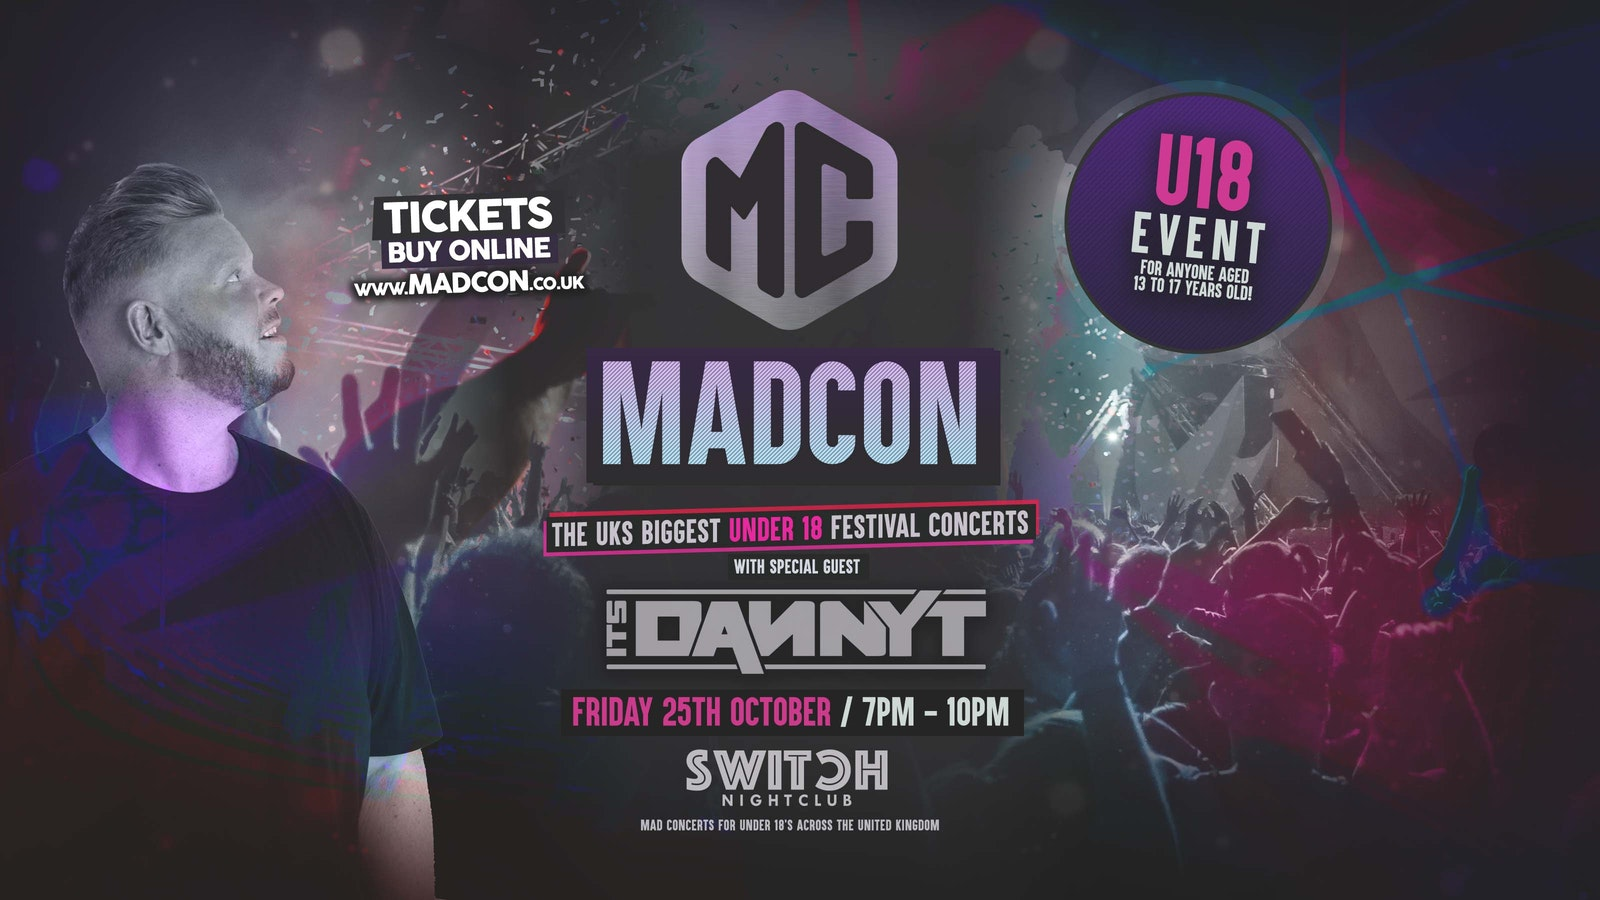 MadCON U18 – Switch Preston